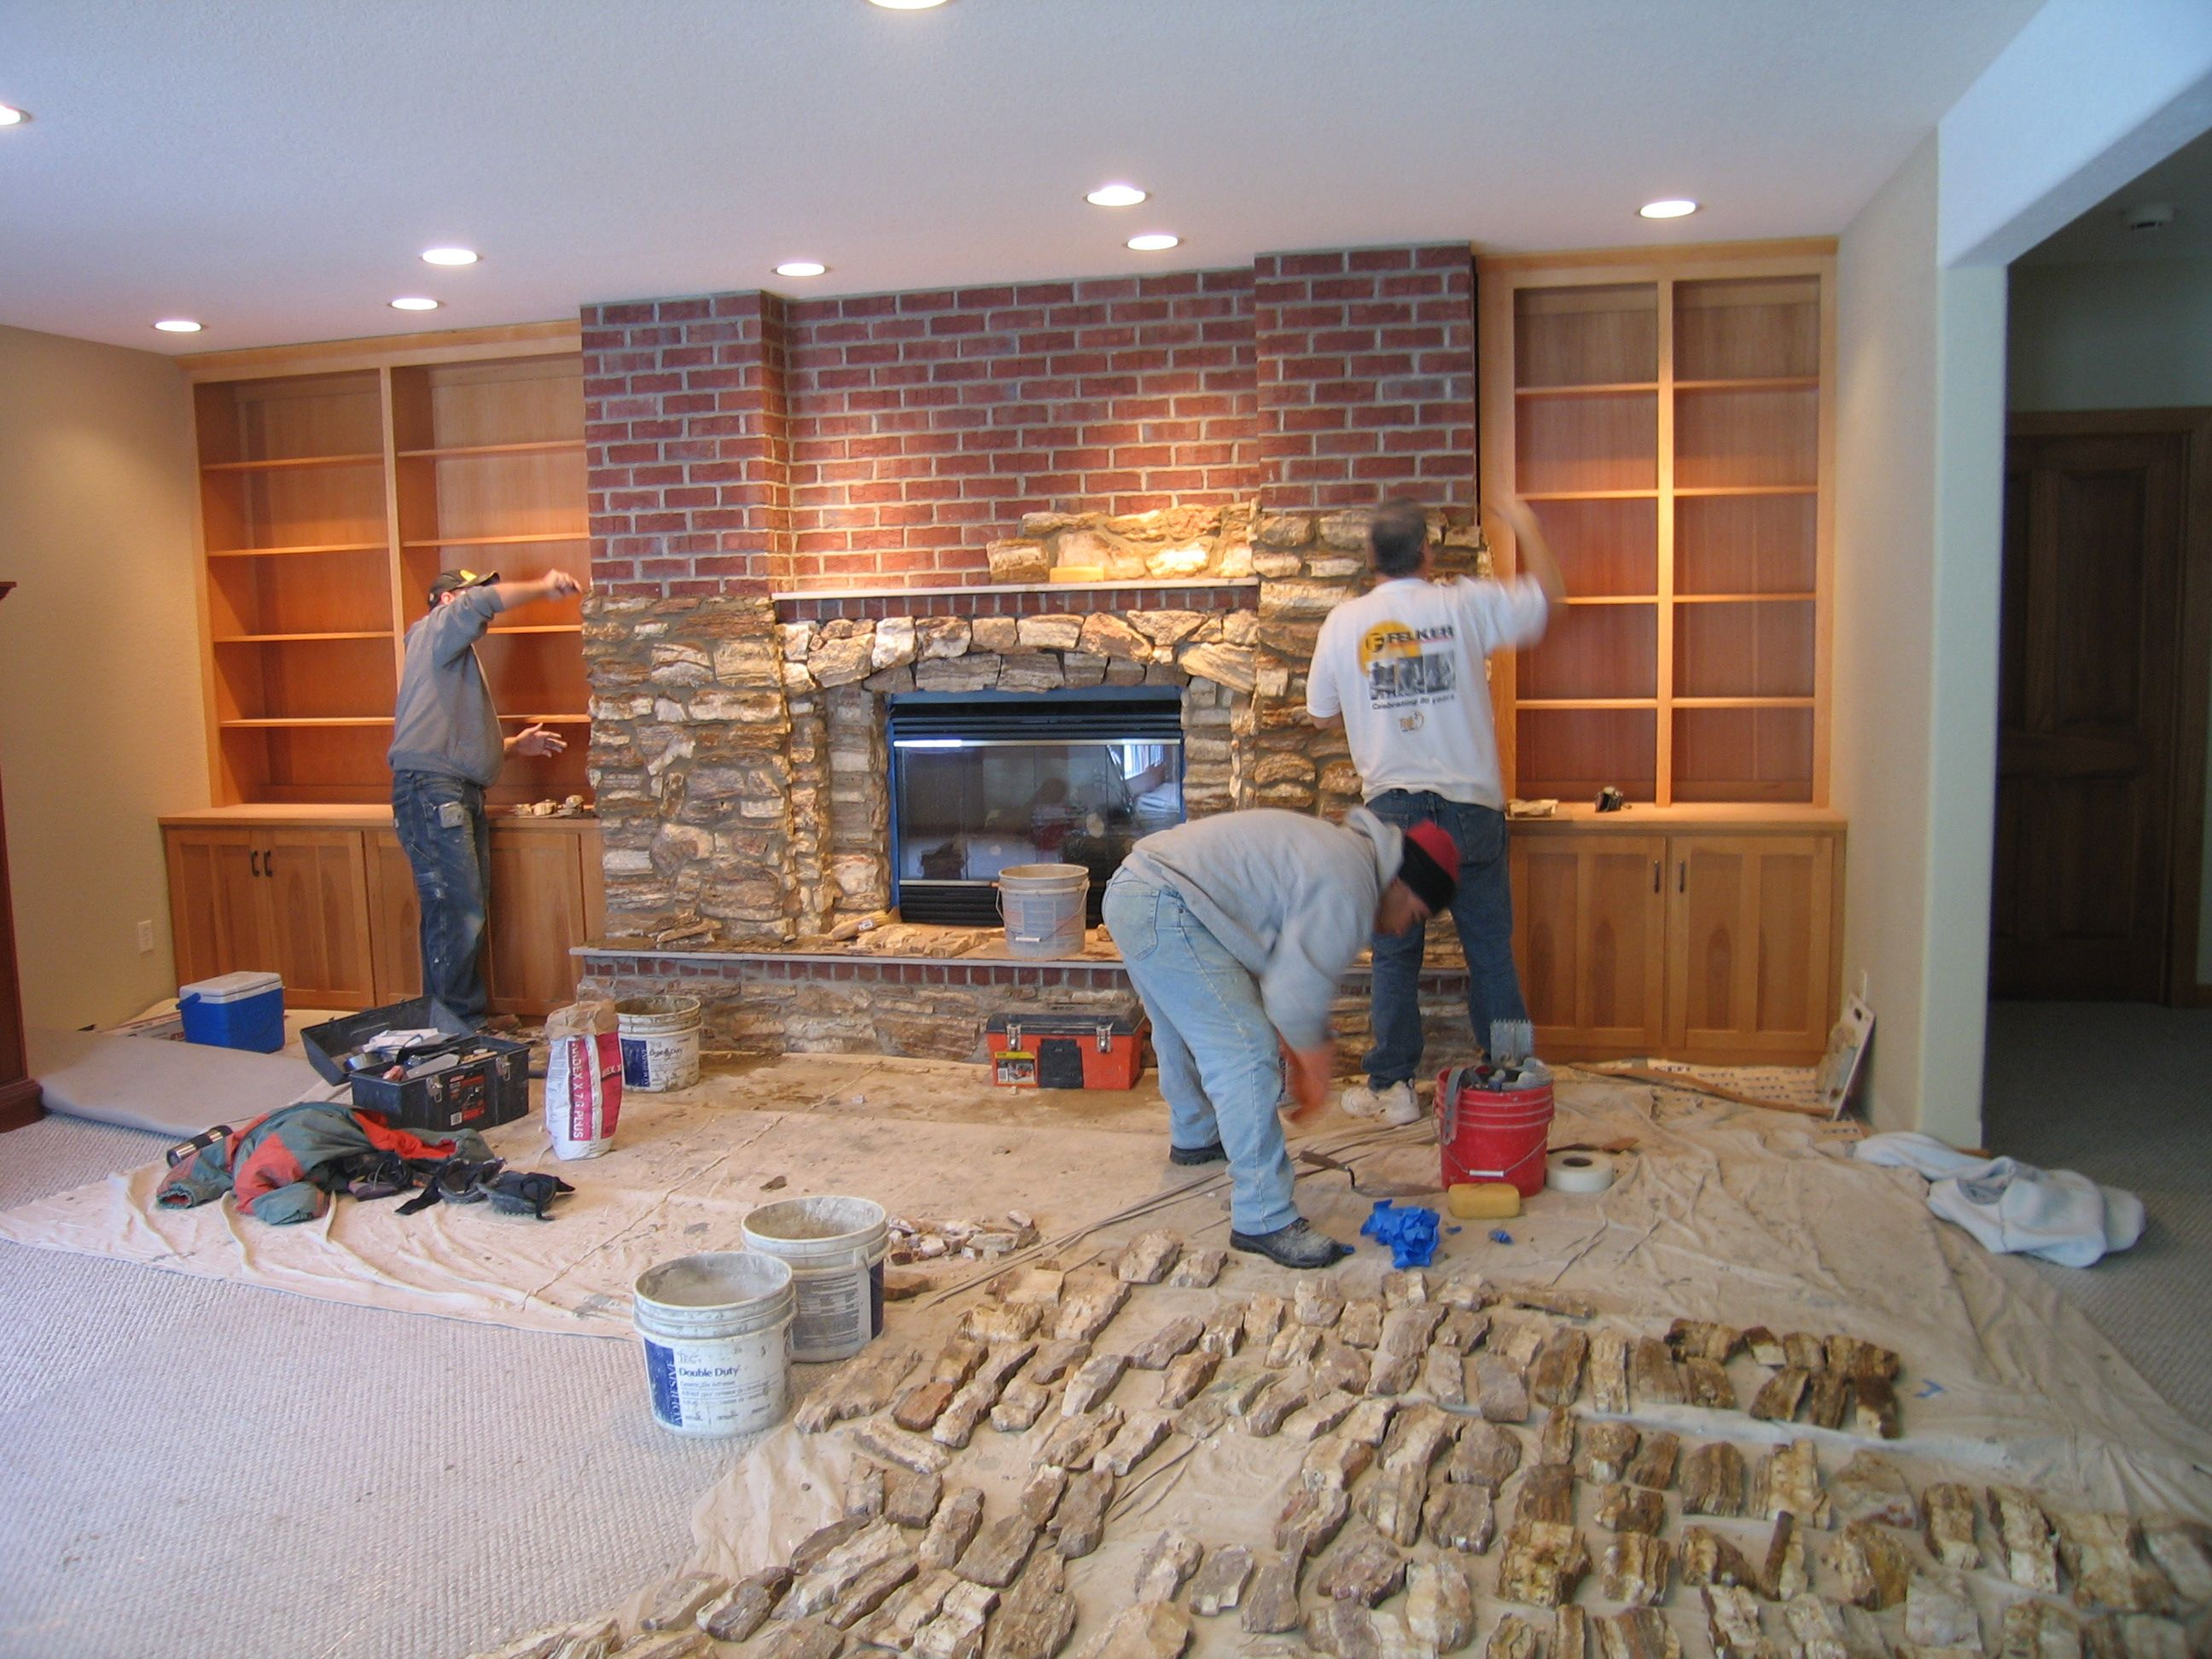 Cover Brick Fireplace With Wood Panels Re Cover A Brick Fireplace With Stone If We Ever Have A